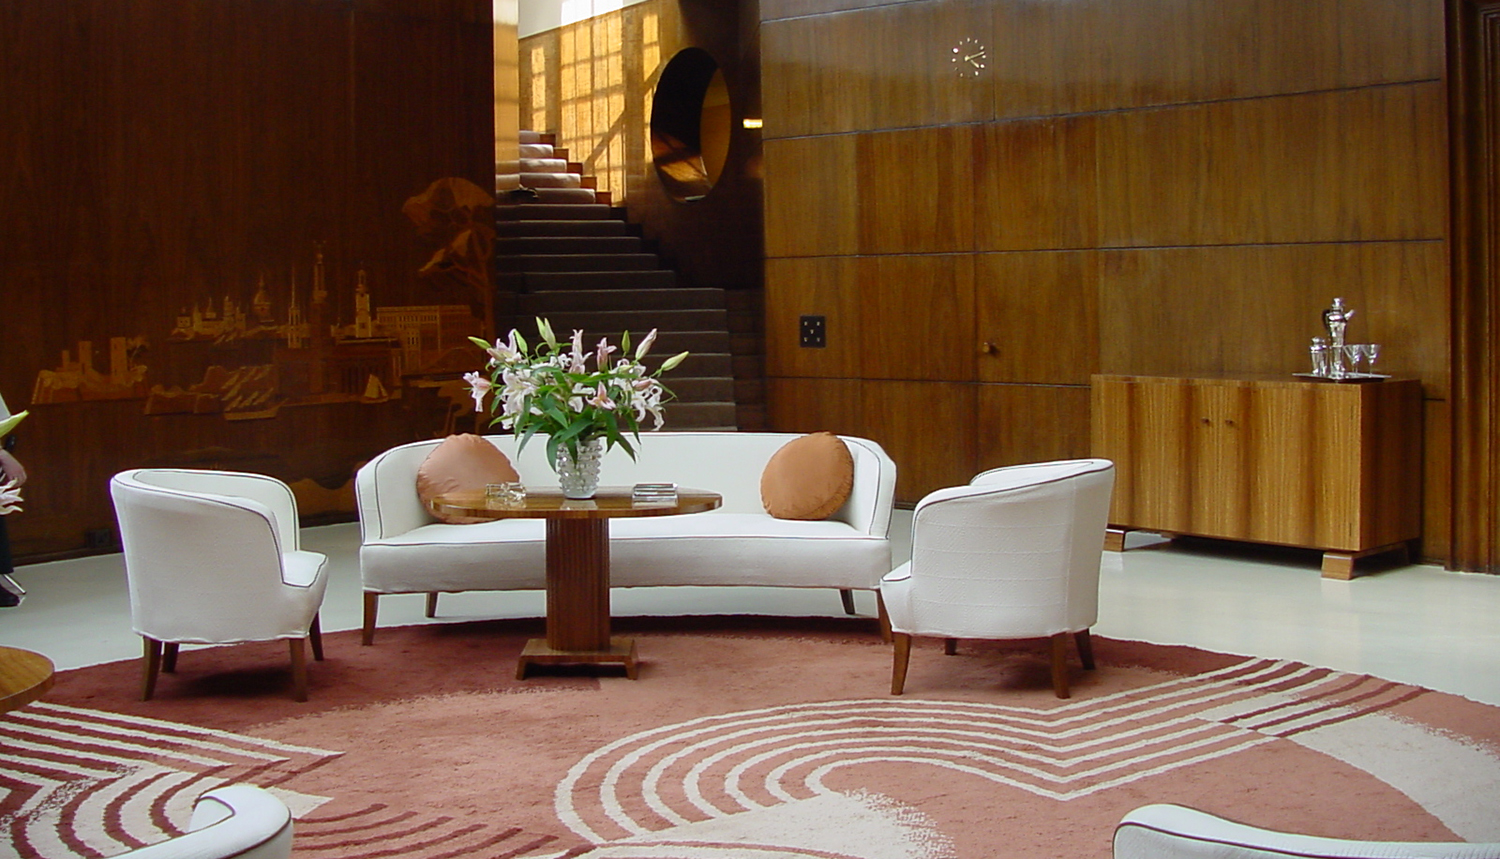 One of my favourite interiors, London's Eltham Palace dates from the 1930's